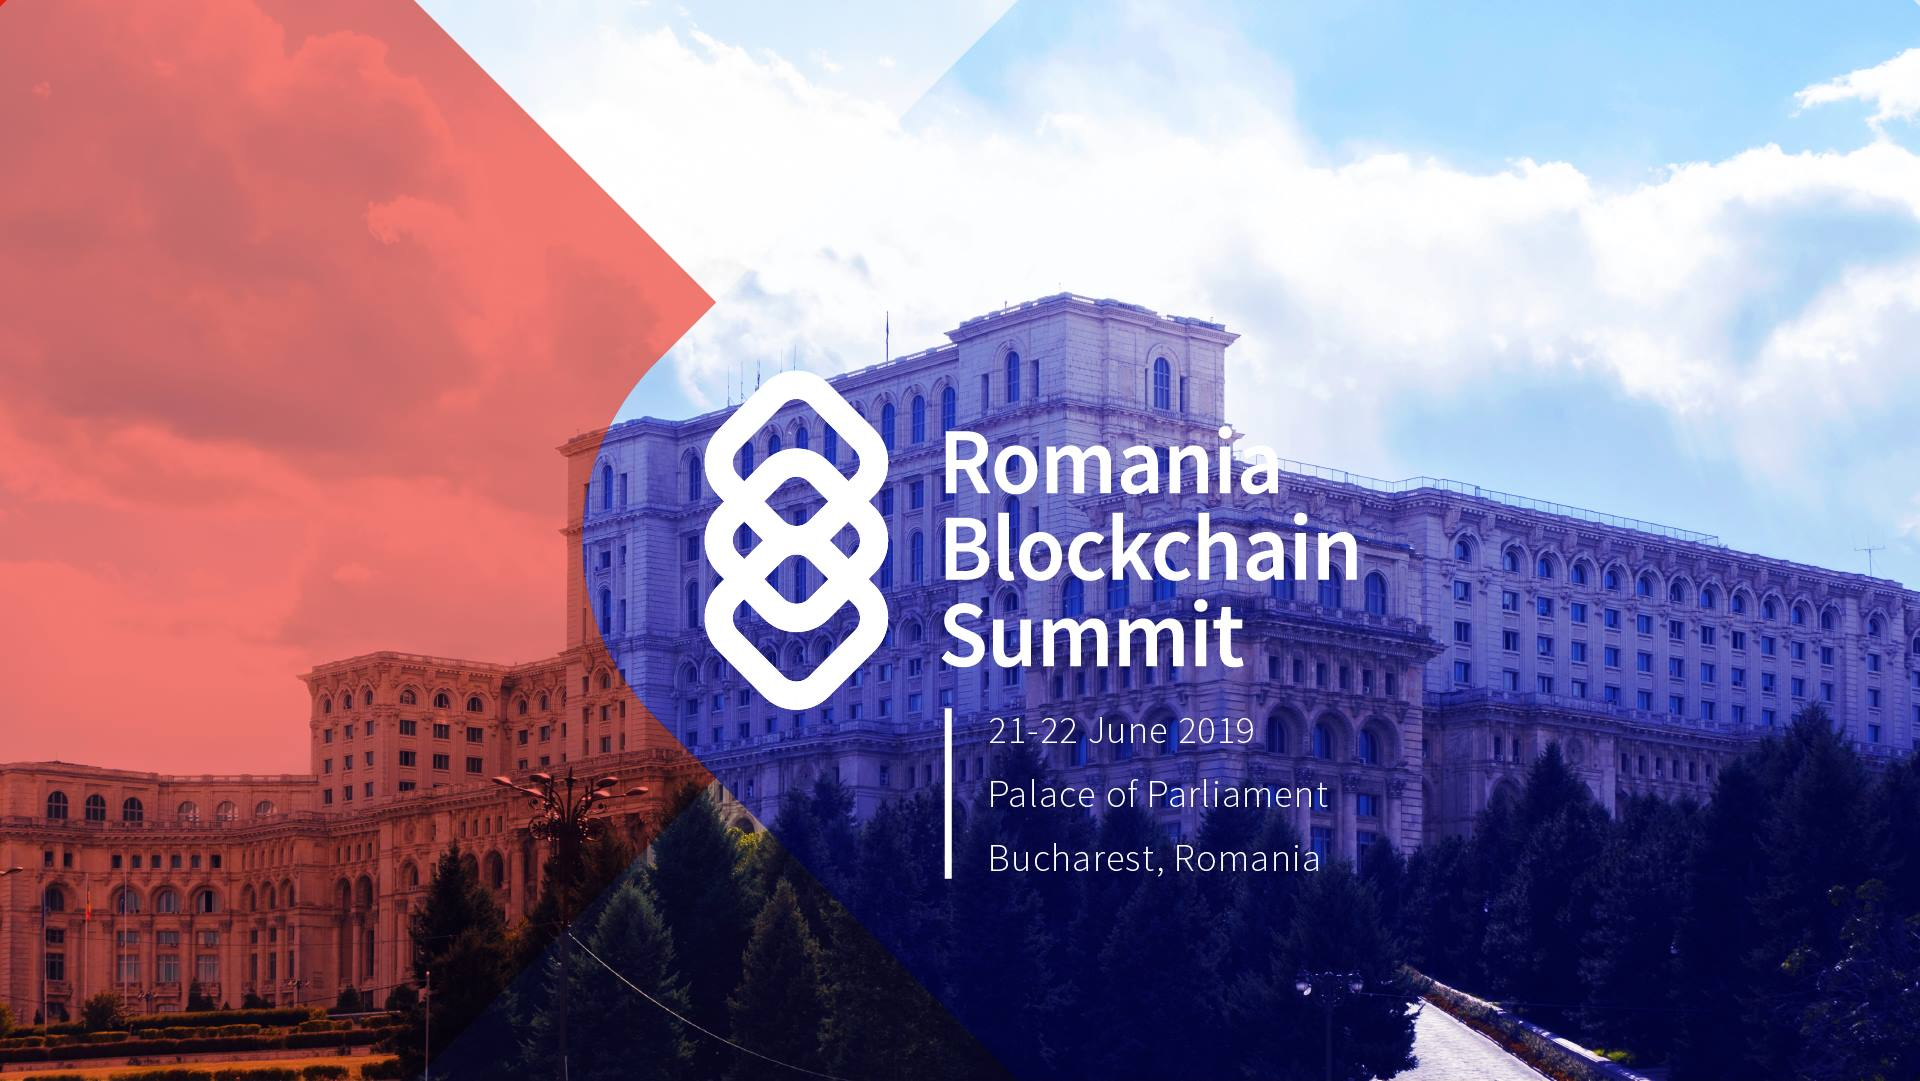 Romania Blockchain Summit